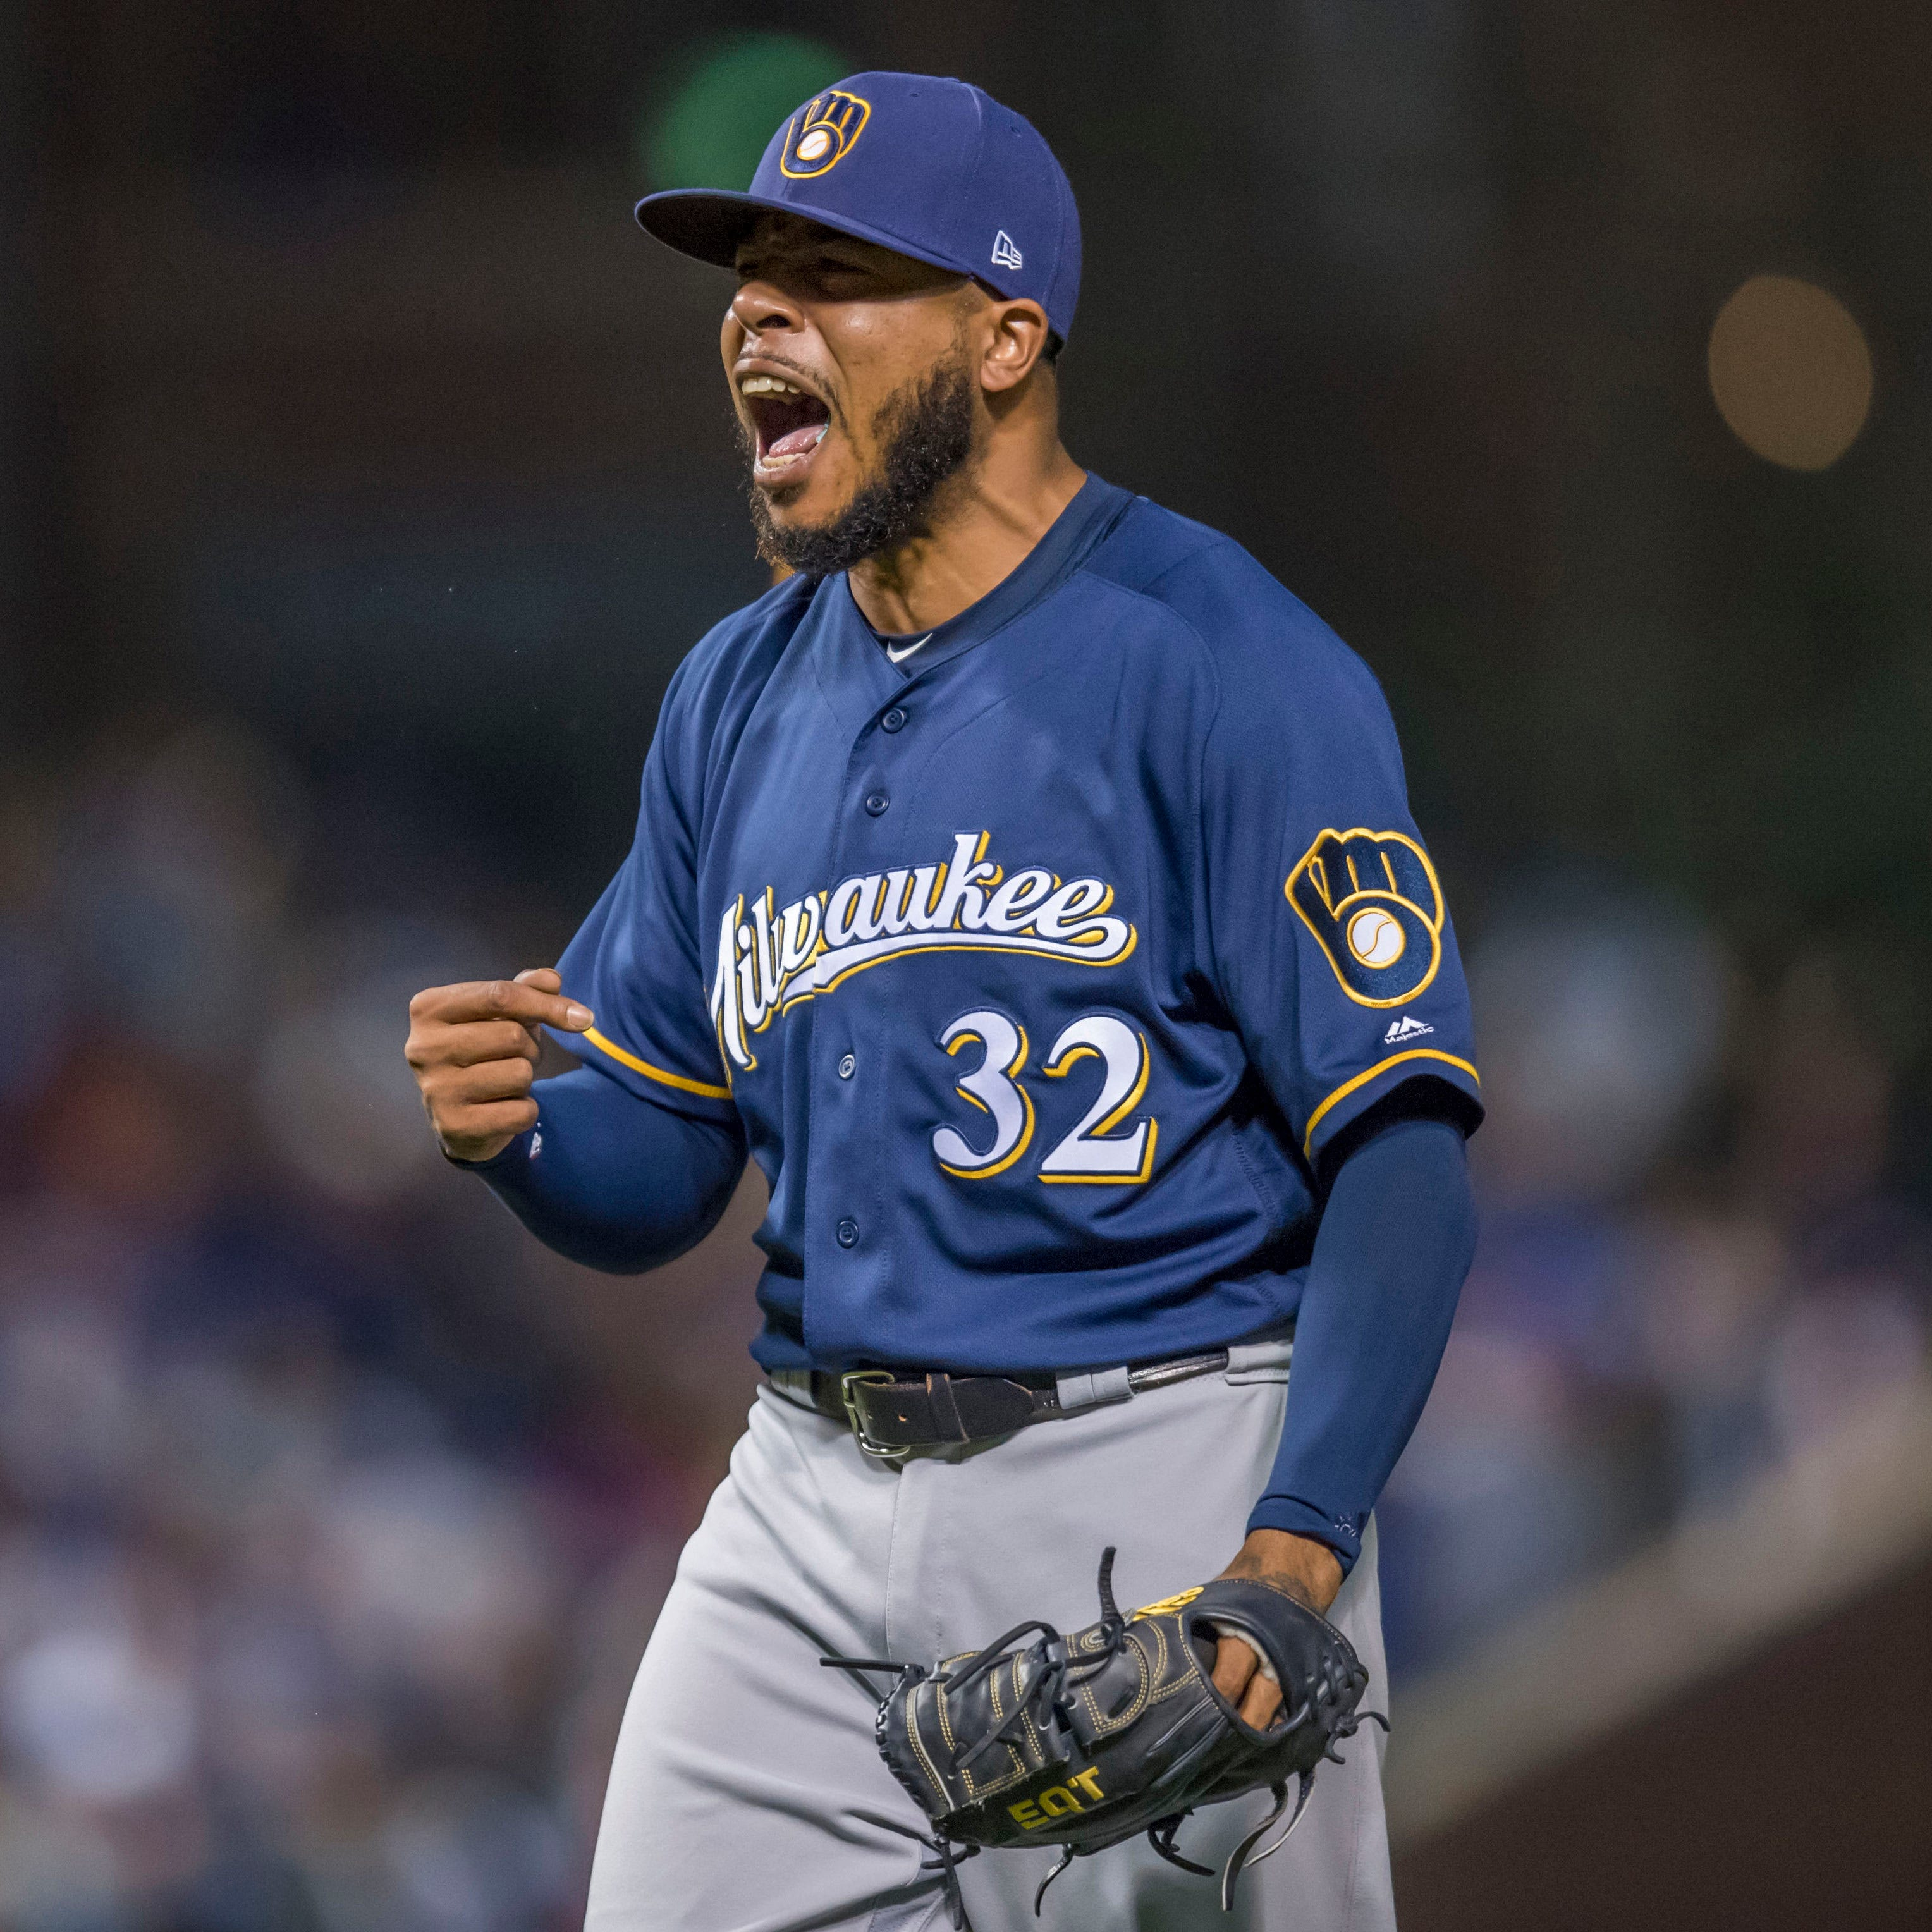 Brewers say every game counts the same but they know what beating Cubs means at this point